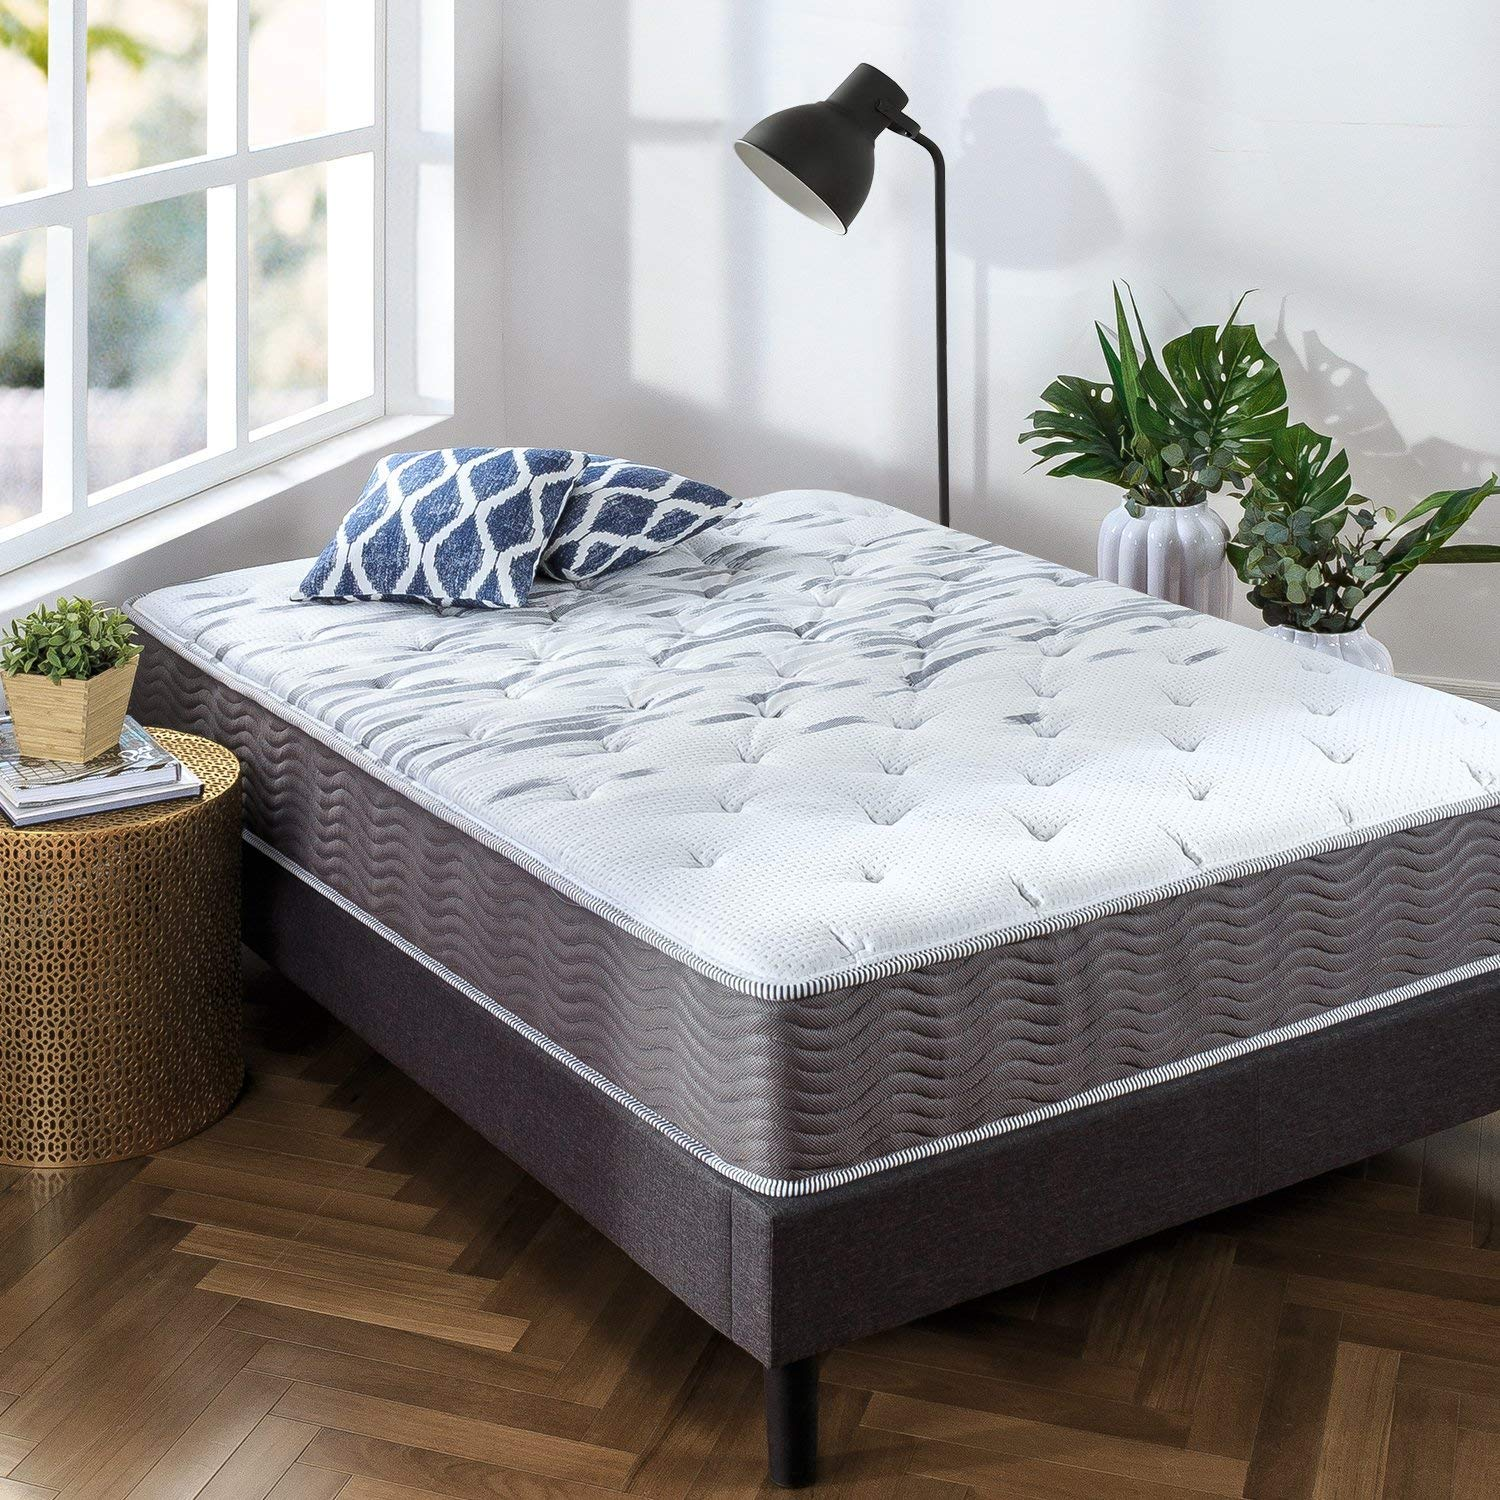 Zinus Sleep Master Extra Firm iCoil 10 Inch Spring Mattress Review